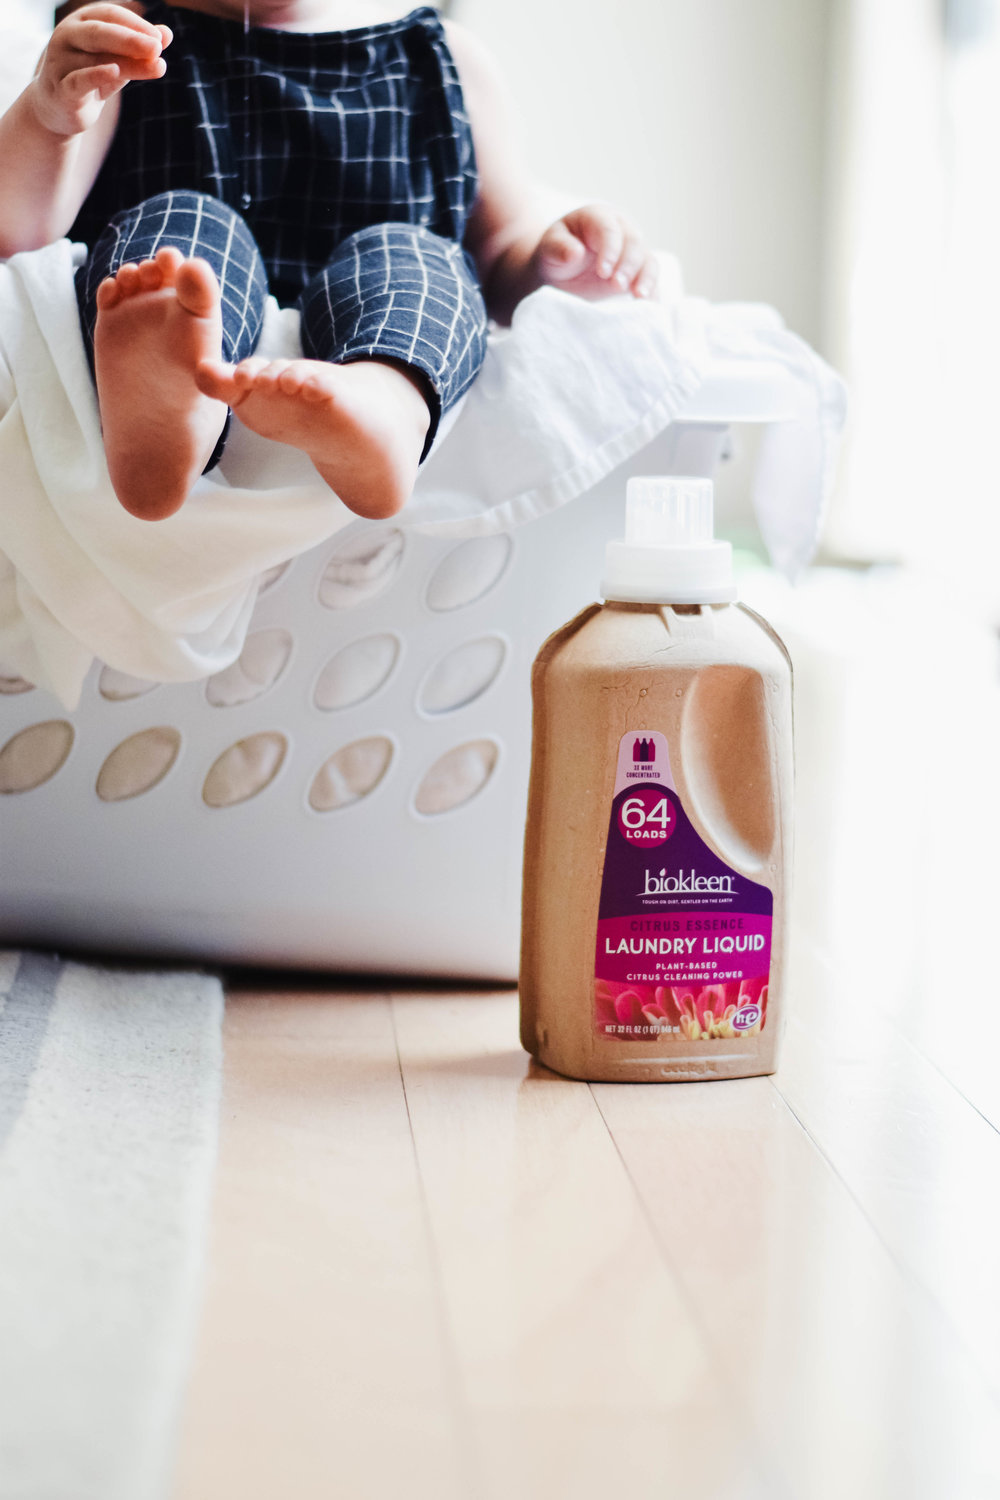 Biokleen -- All Natural Eco-Friendly Cleaning Products - Eco Friendly Laundry Detergent